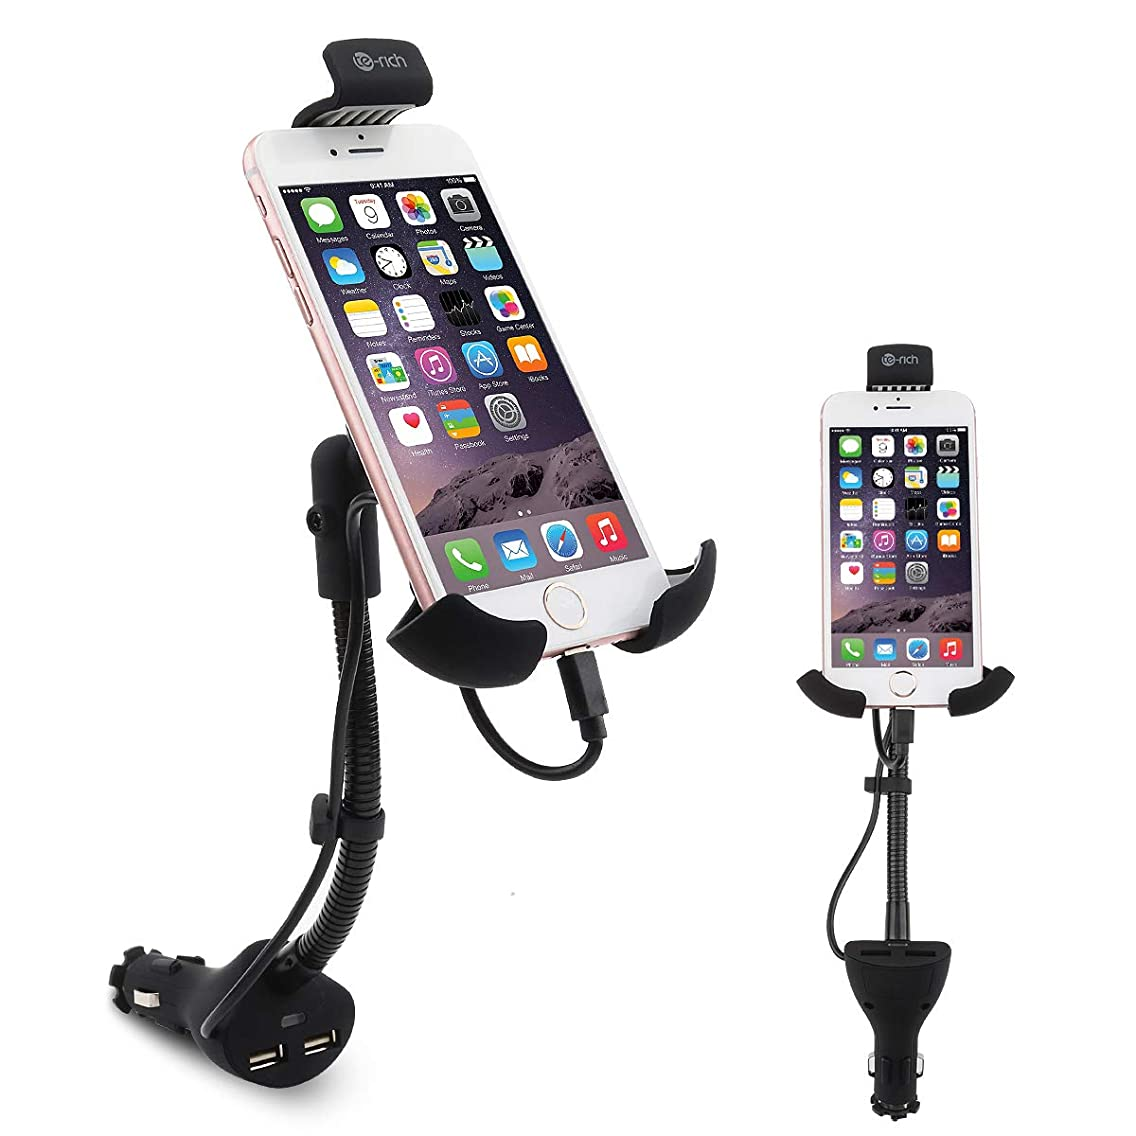 Te-Rich 2-in-1 Cigarette Lighter Smartphone Car Mount Charger Auto Cell Phone Holder Cradle - Built-in Charging Cable Compatible w/iPhones - Dual USB, 3.1A Max